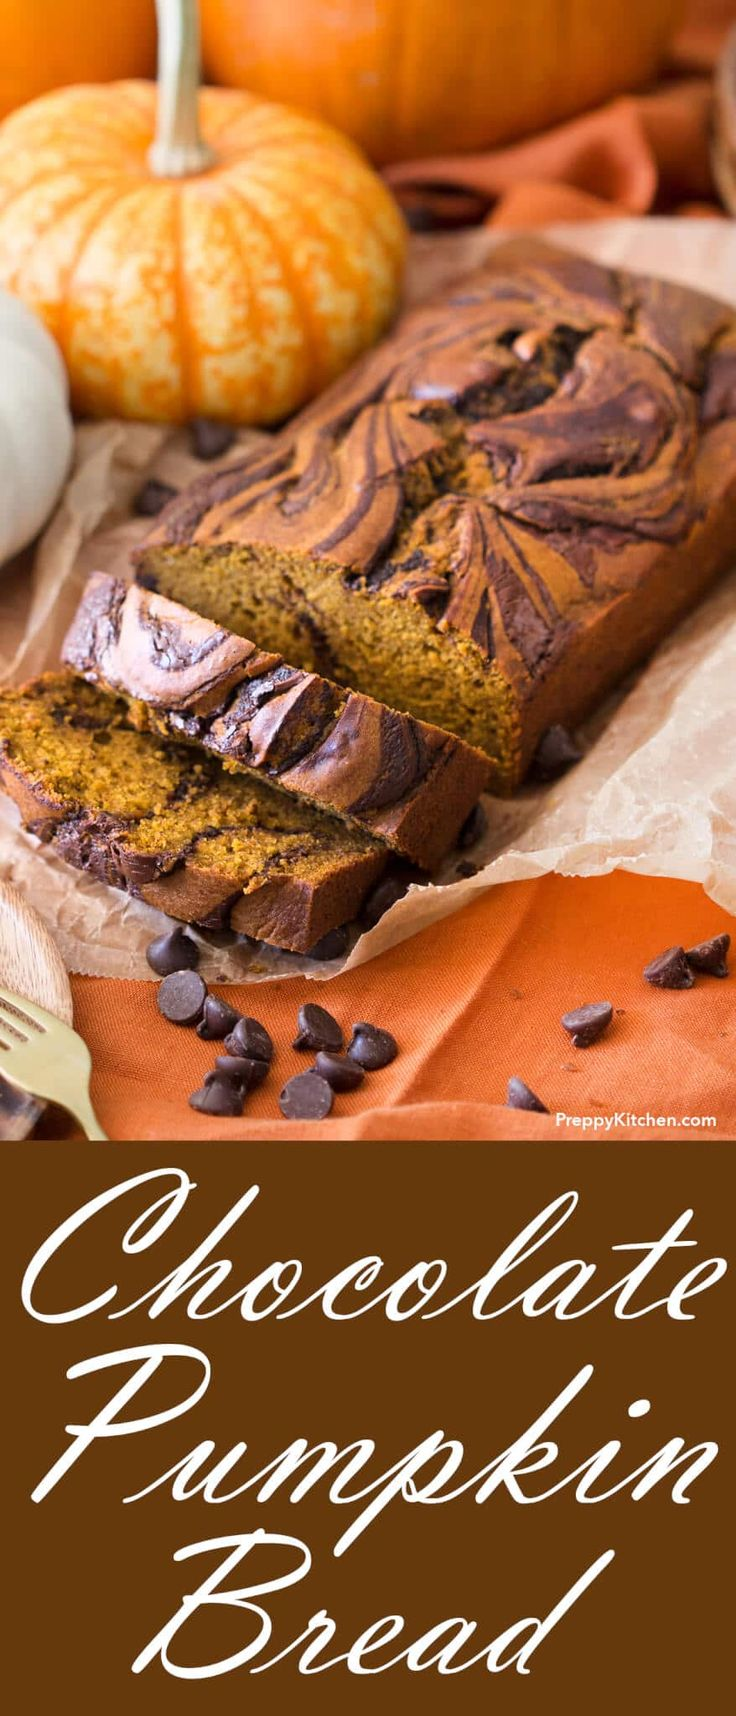 Chocolate Pumpkin Bread via @preppykitchen | Soft, moist pumpkin chocolate cake that's perfect for the holidays.  Quick and easy to make with delicious pumpkin flavors